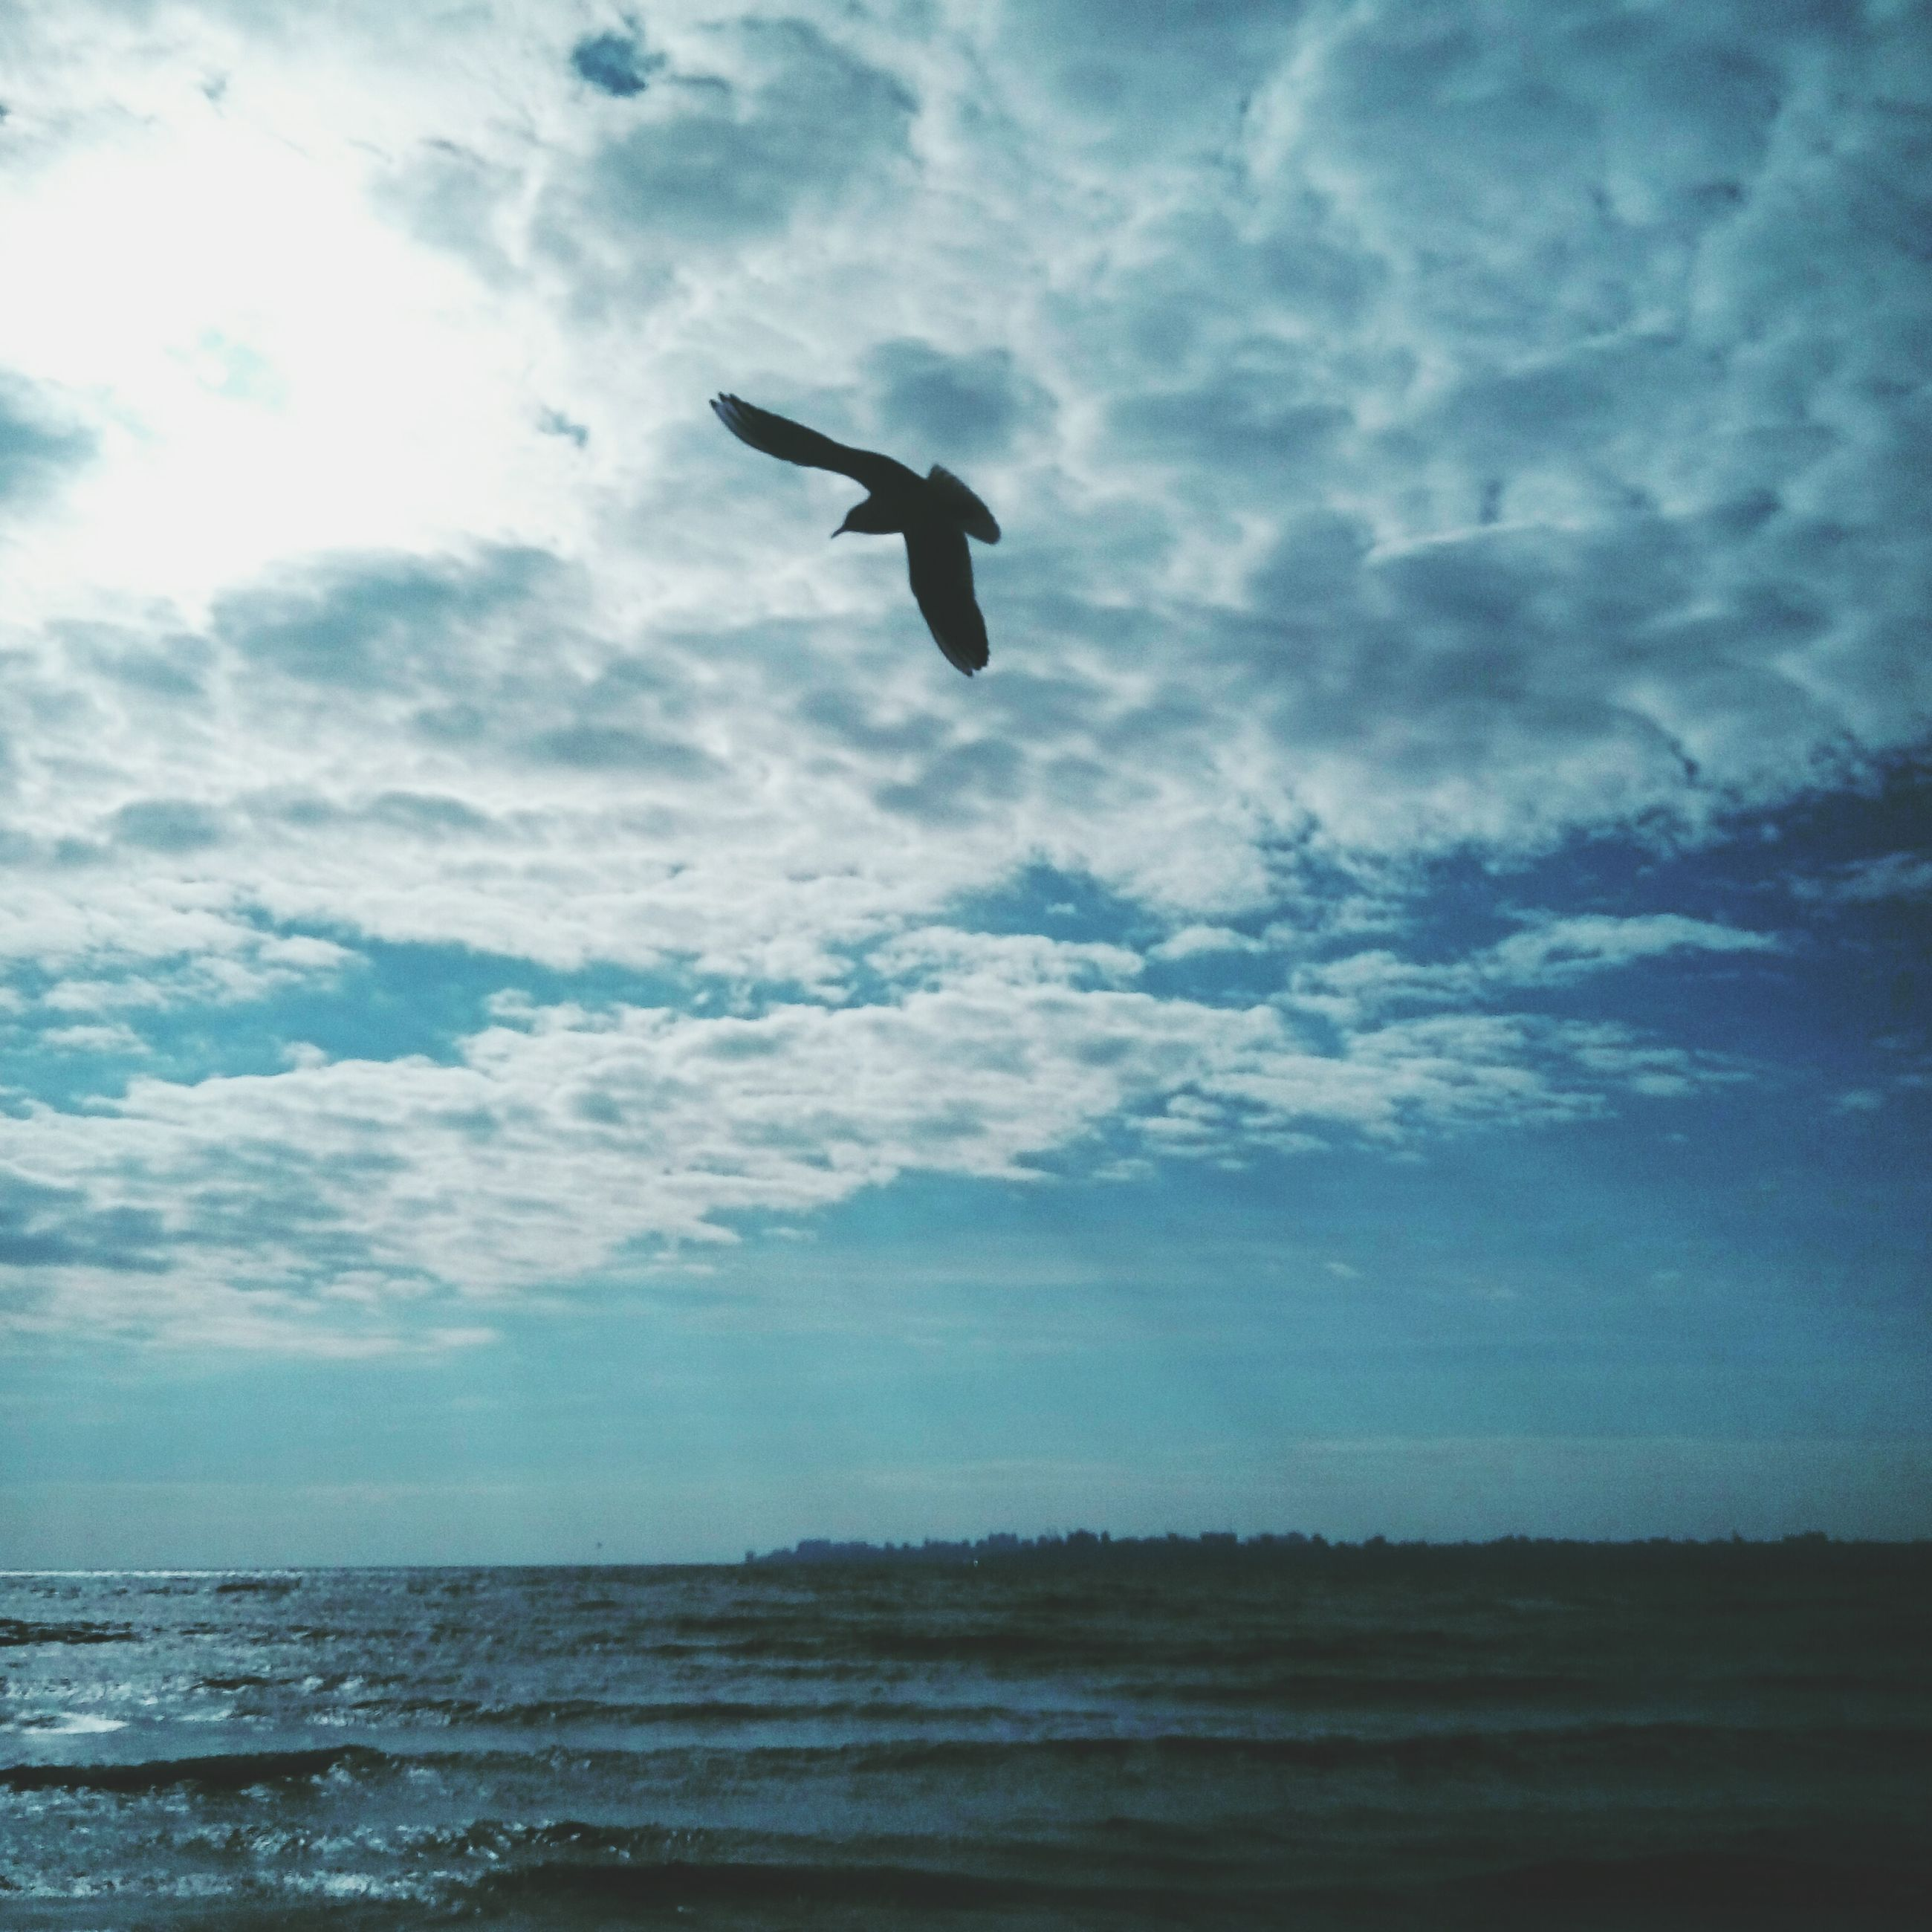 cloud - sky, sea, sky, flying, scenics, bird, nature, low angle view, animal themes, beauty in nature, animals in the wild, no people, day, water, outdoors, horizon over water, one animal, tranquility, tranquil scene, beach